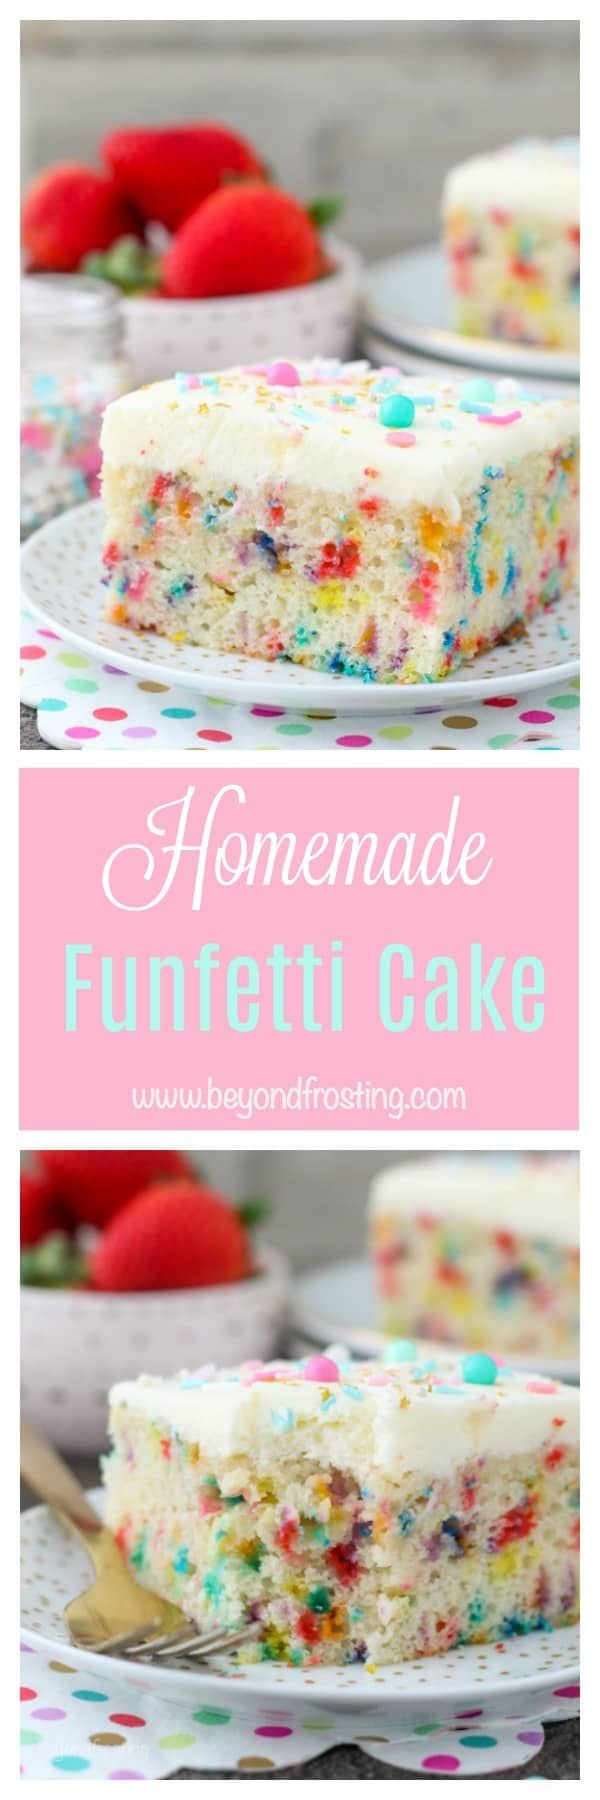 This moist Homemade Funfetti Cake recipe is a slightly denser than average cake with a tight crumb made with buttermilk. It's has a sponge like texture and it's packed full of vanilla and sprinkles.